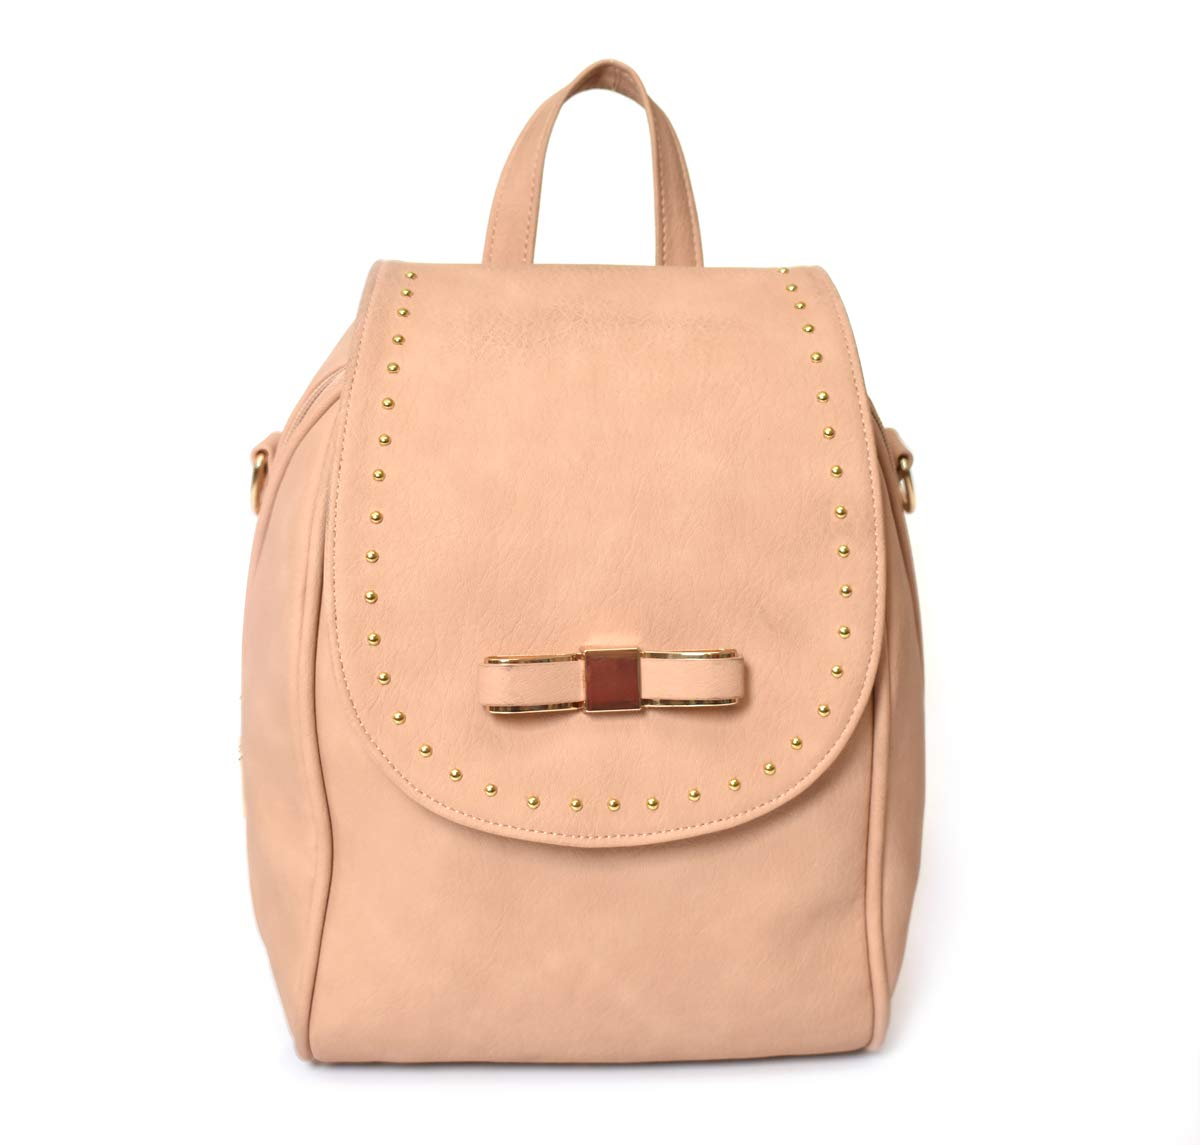 Charming Charlie Women's Backpack w/Bow and Studs - Adjustable Straps, Zipped Main Compartment